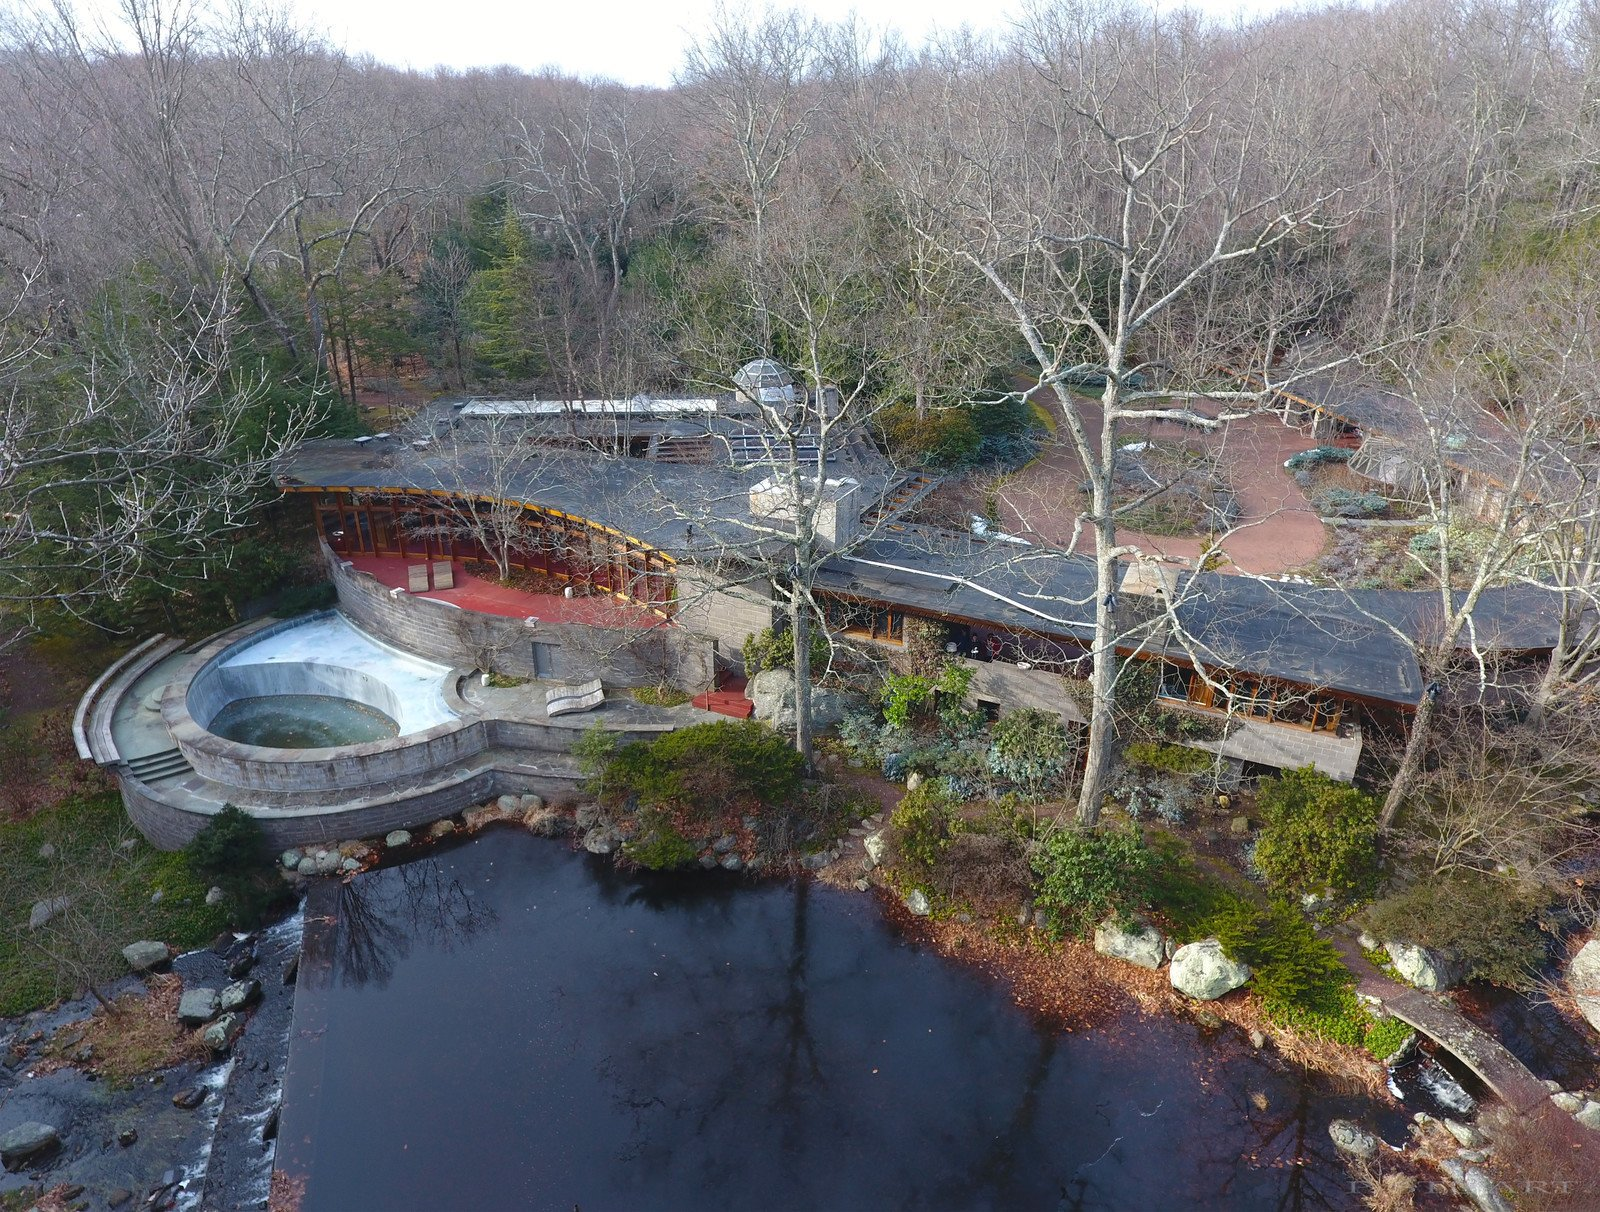 An overhead drone view shows the 15-acre property that also hosts a heated pool, river, tennis court, barn/stable, sculpture path, and rooftop observatory. The original landscaping was designed by Frank Okamura and Charles Middeleer.   Tirranna by Dwell